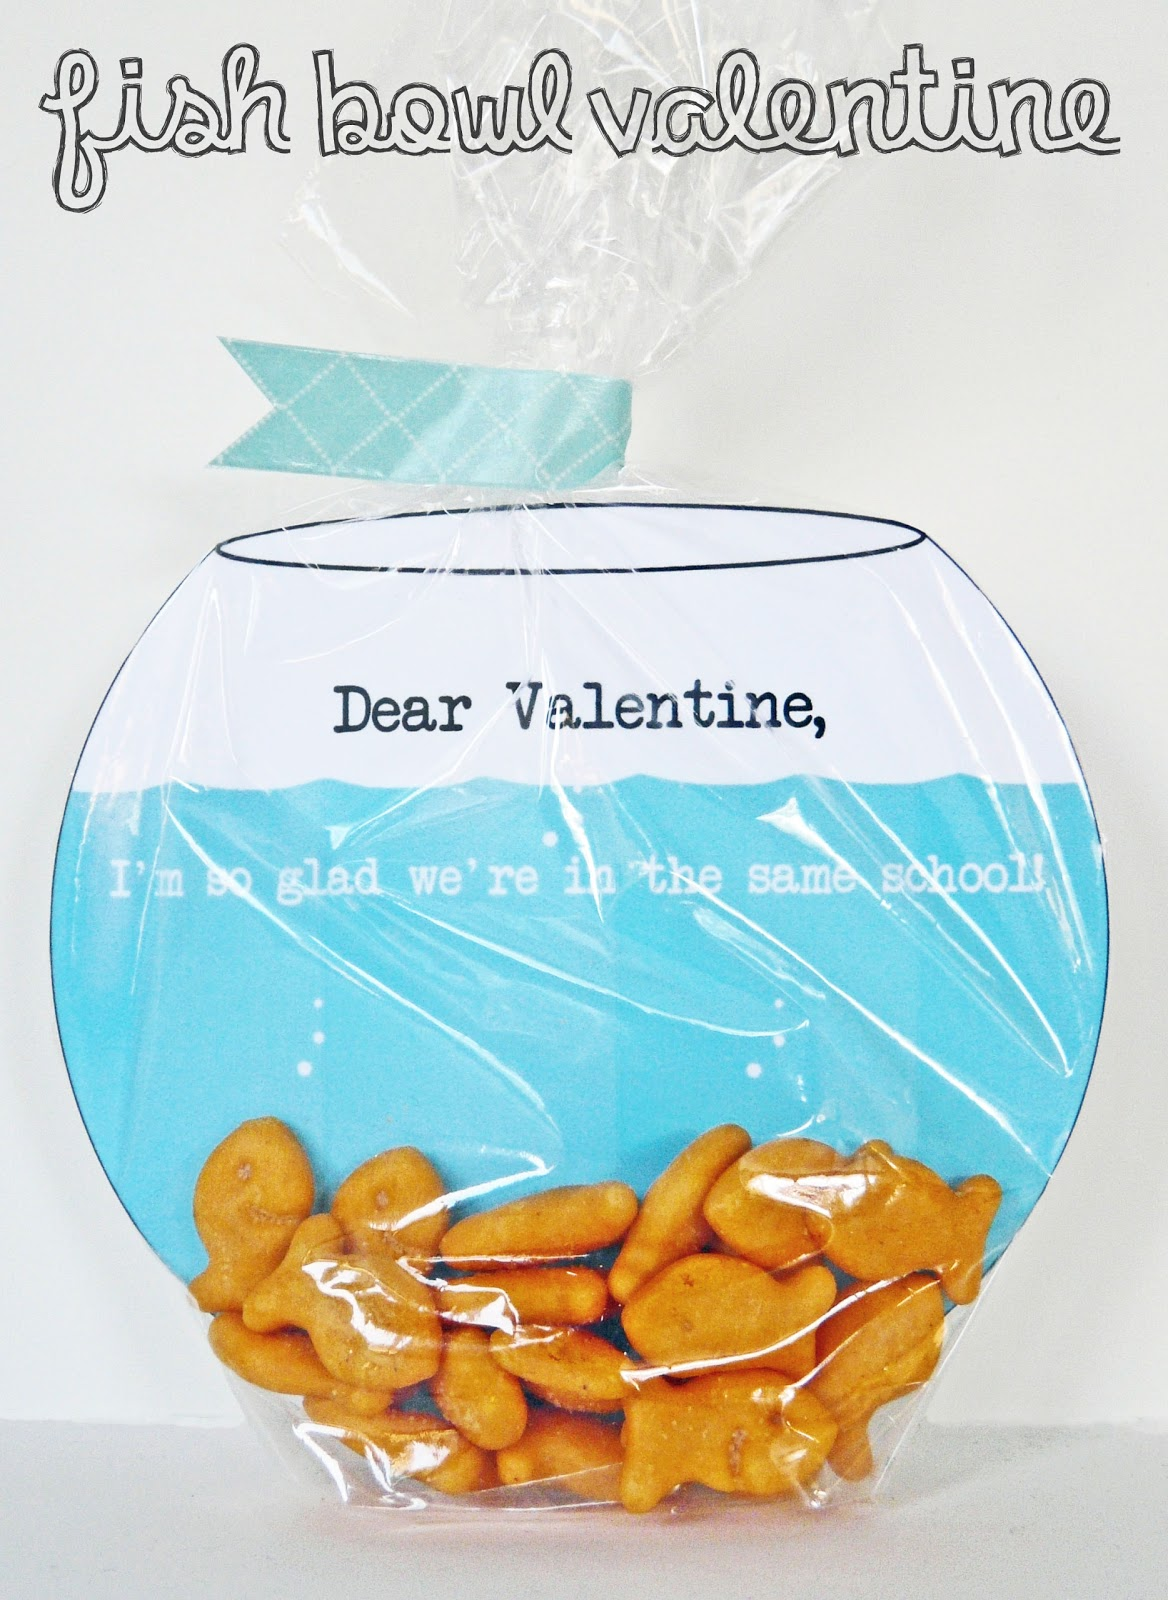 Quotes about fish bowls quotesgram for Fish bowl fish